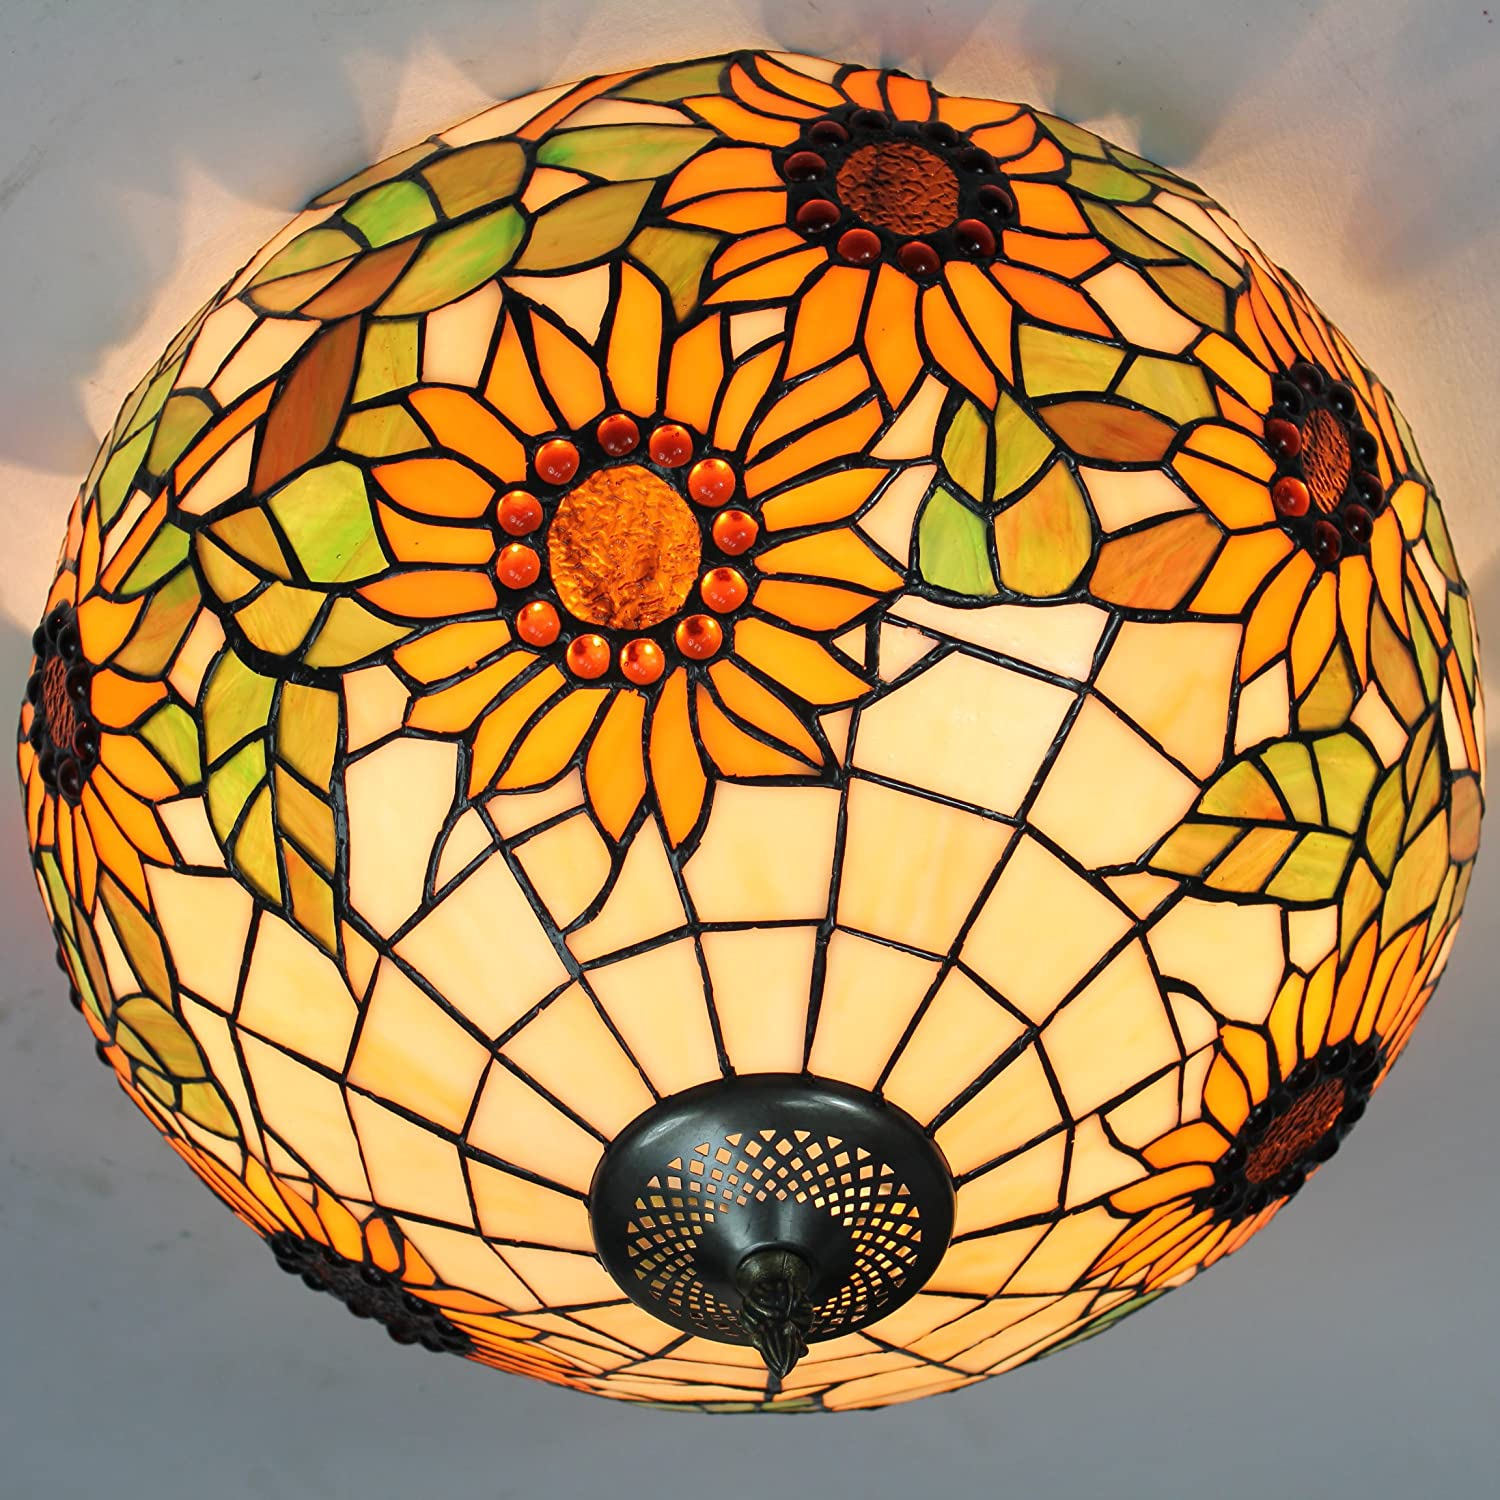 16-Inch European Retro Style Tiffany Sunflower Stained Glass Flush Mount Ceiling Light Dining Room Light